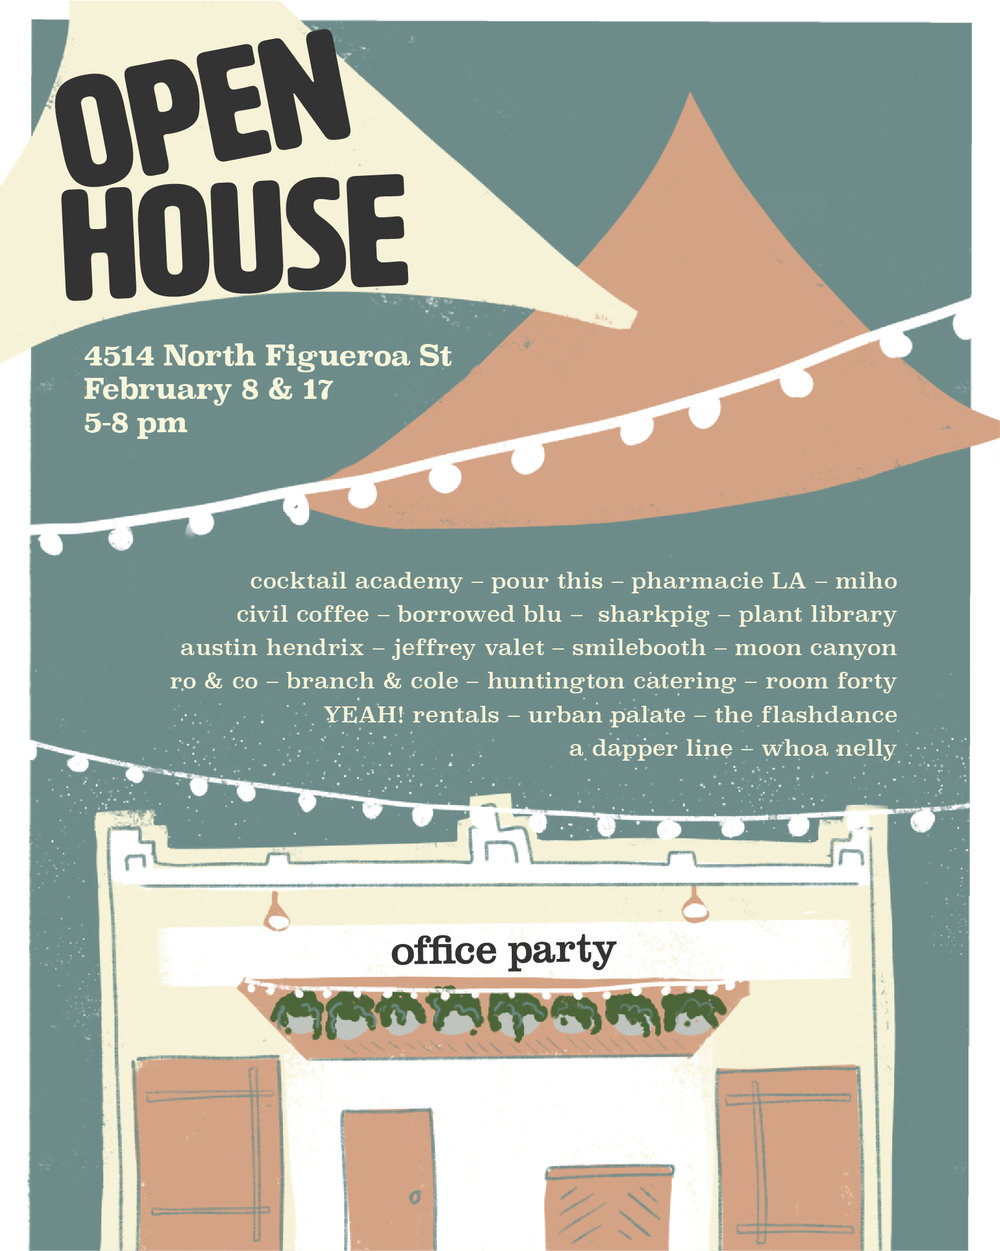 Open House_Office Party_ALL 2.jpg